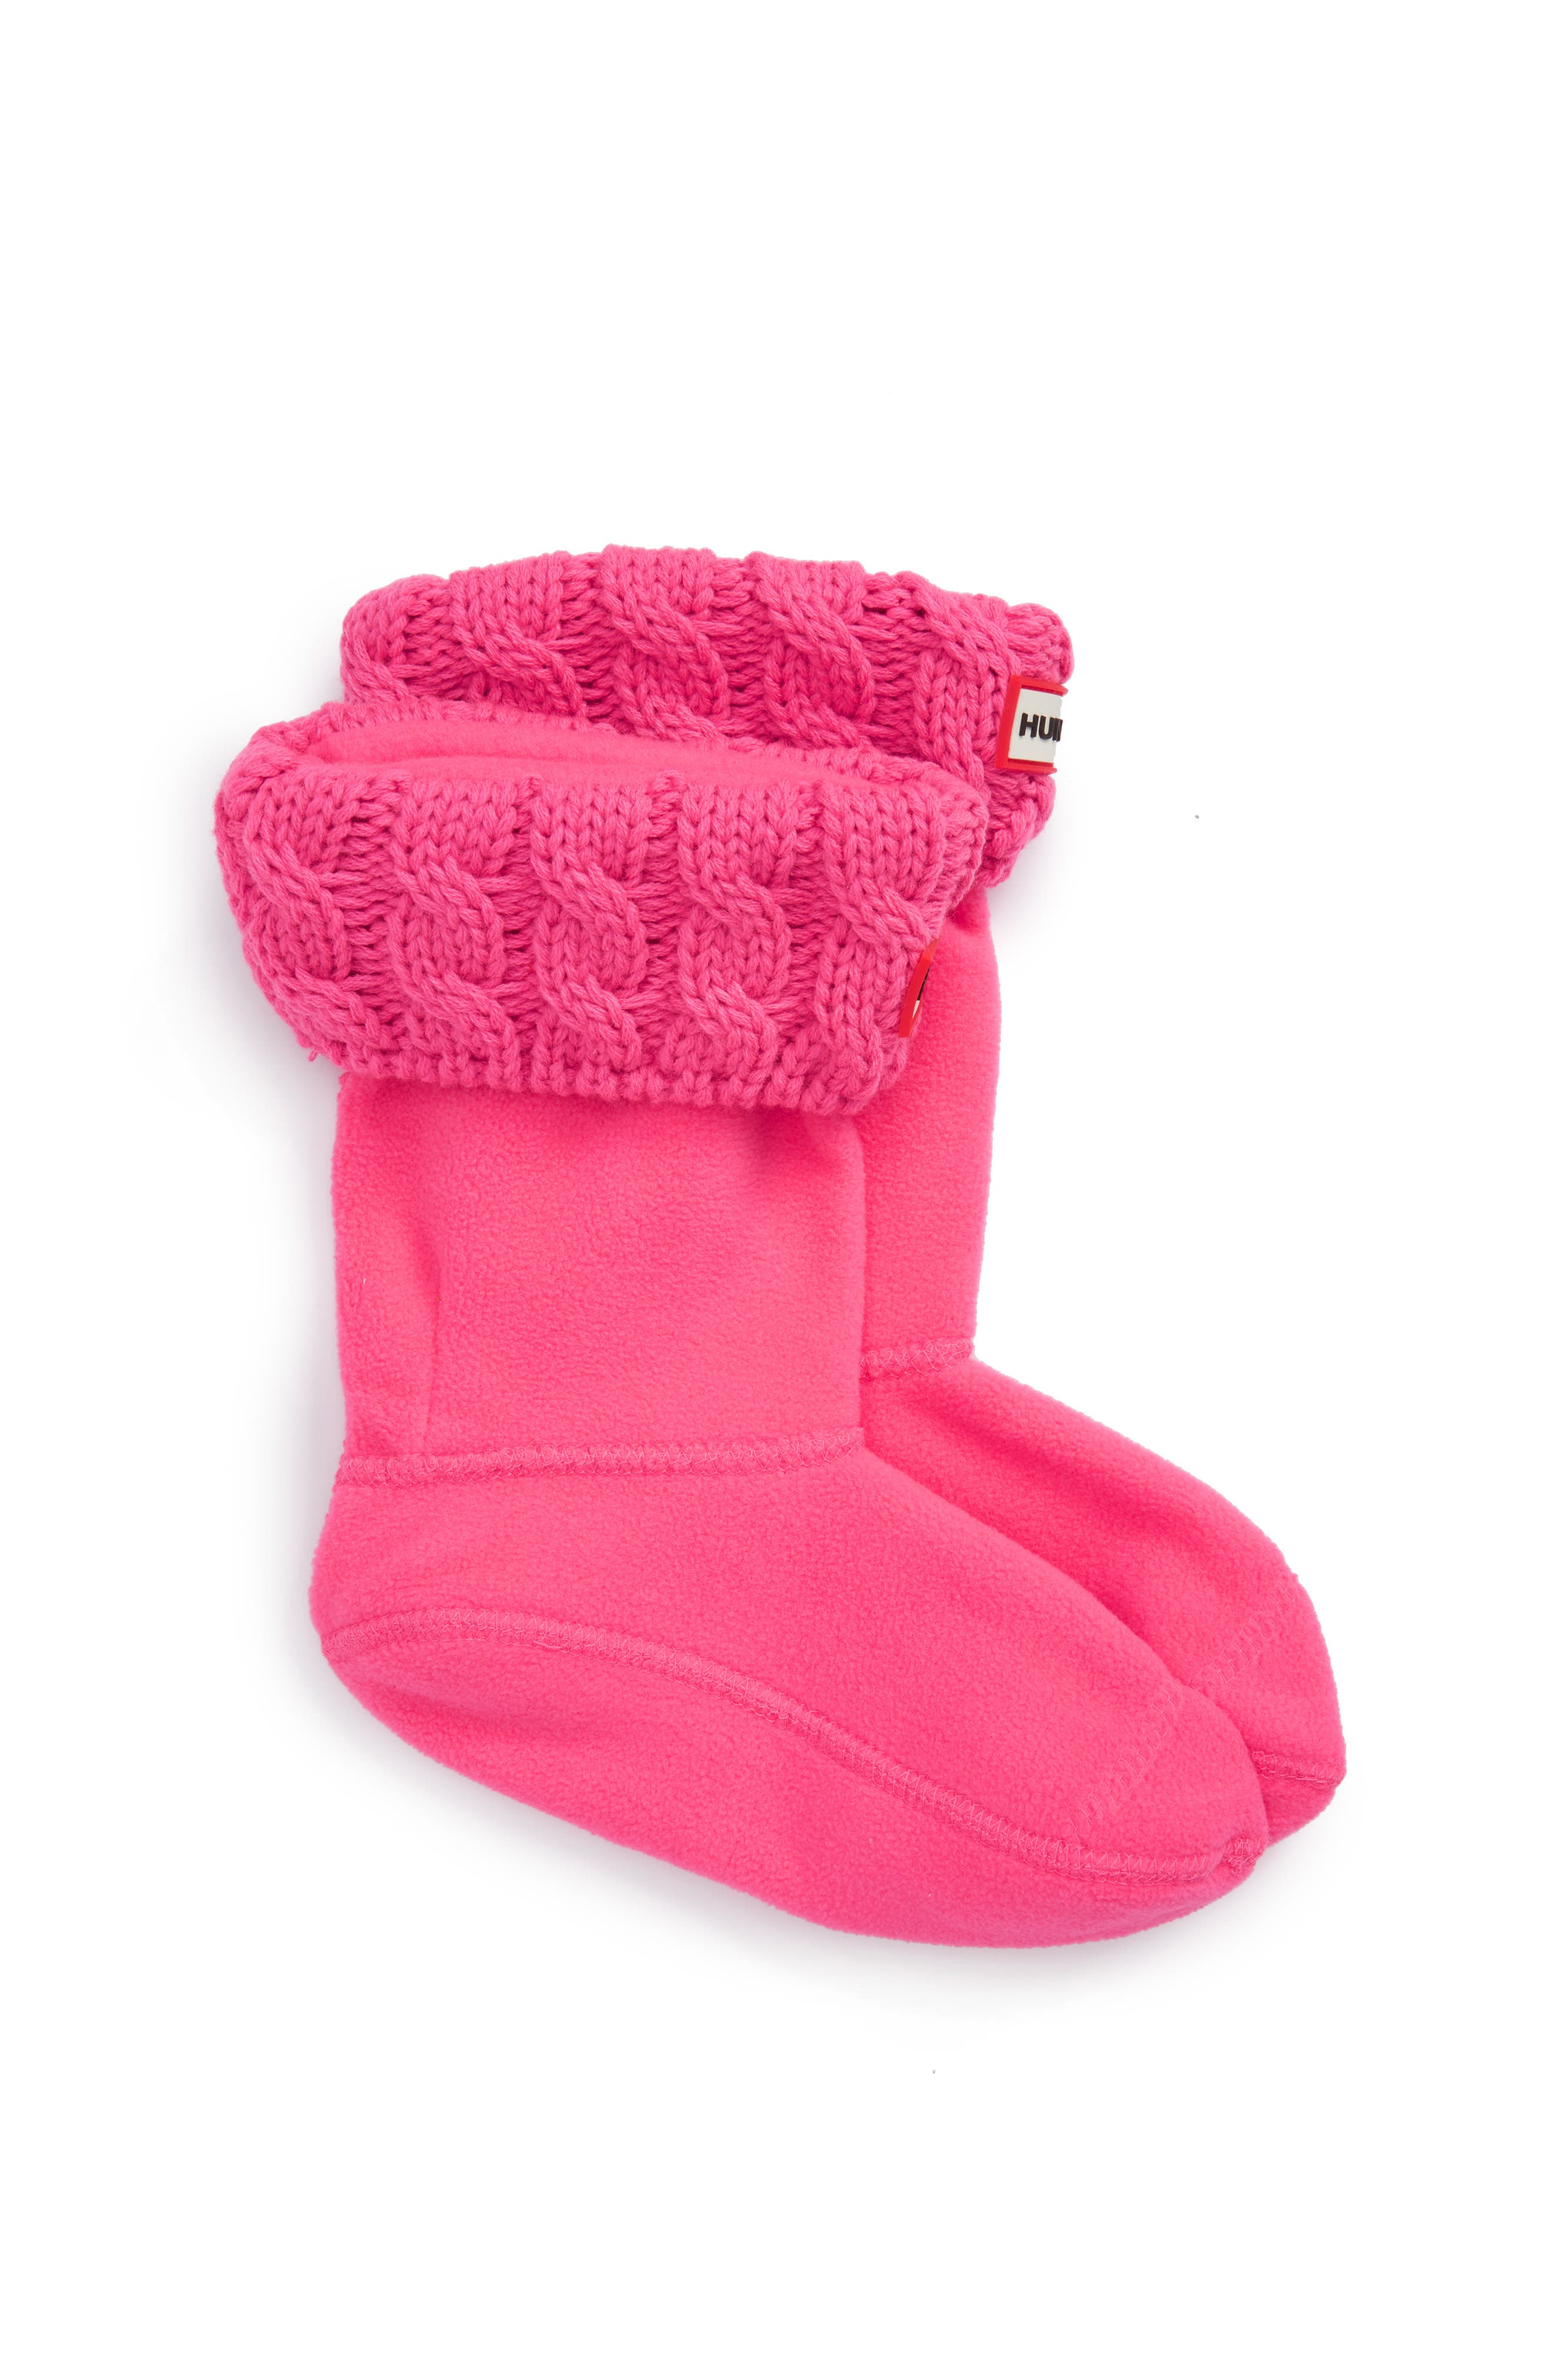 Cable Knit Cuff Welly Boot Socks,                         Main,                         color, Ion Pink